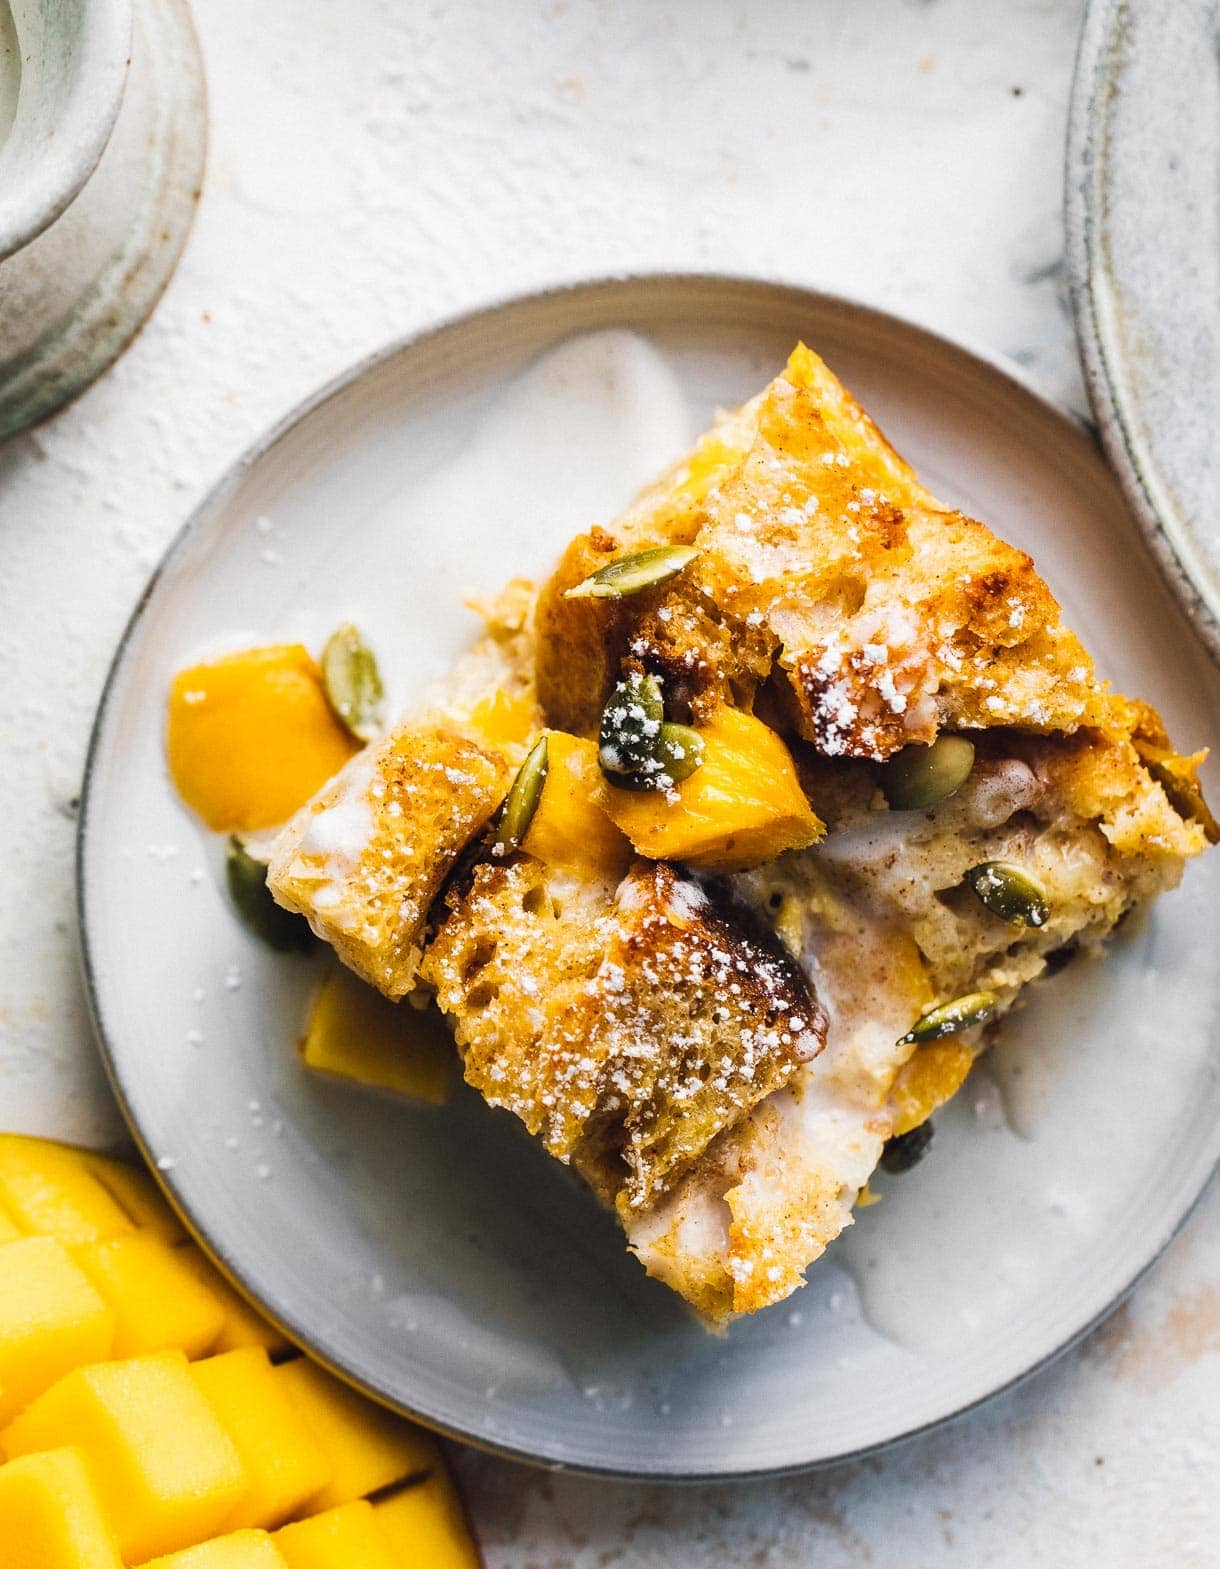 mango bread pudding on a plate